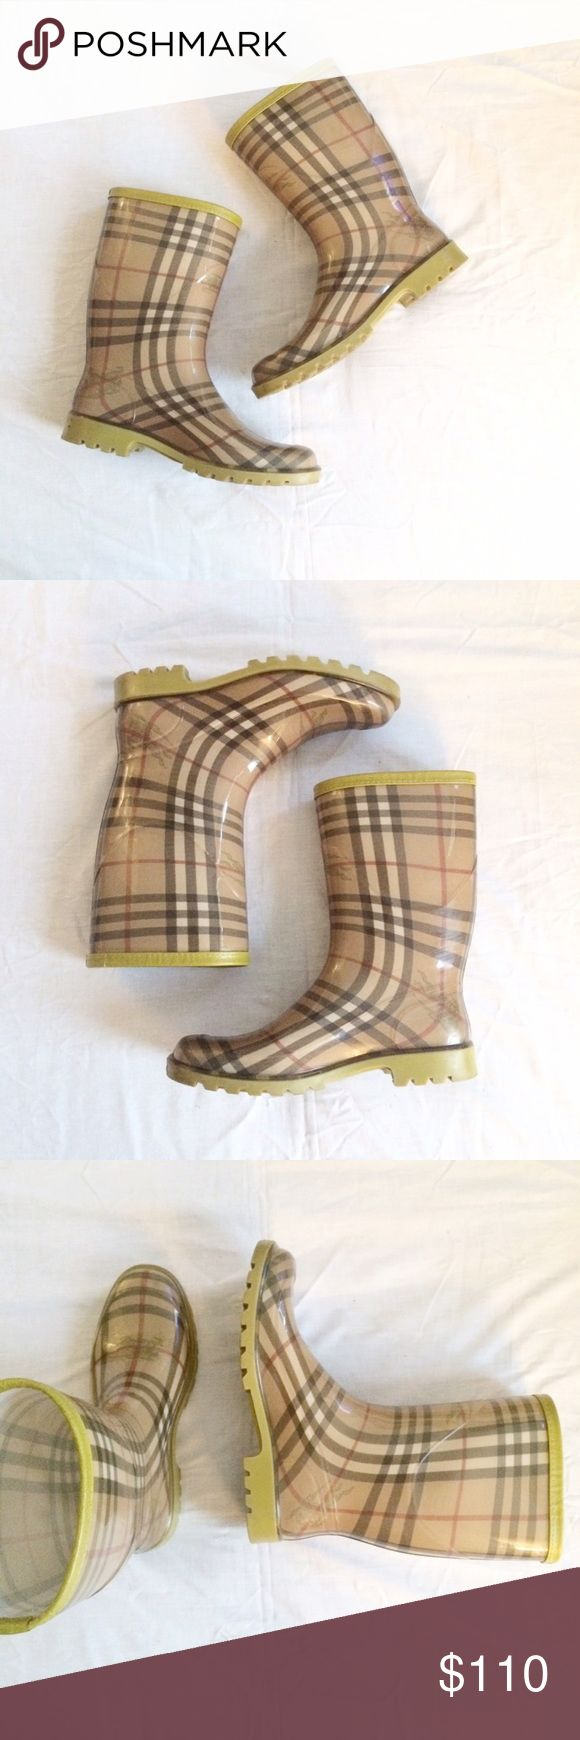 Burberry Plaid Rainboots Size 9. Purchased in Florence, Italy. Dust bag included. Burberry Shoes Winter & Rain Boots